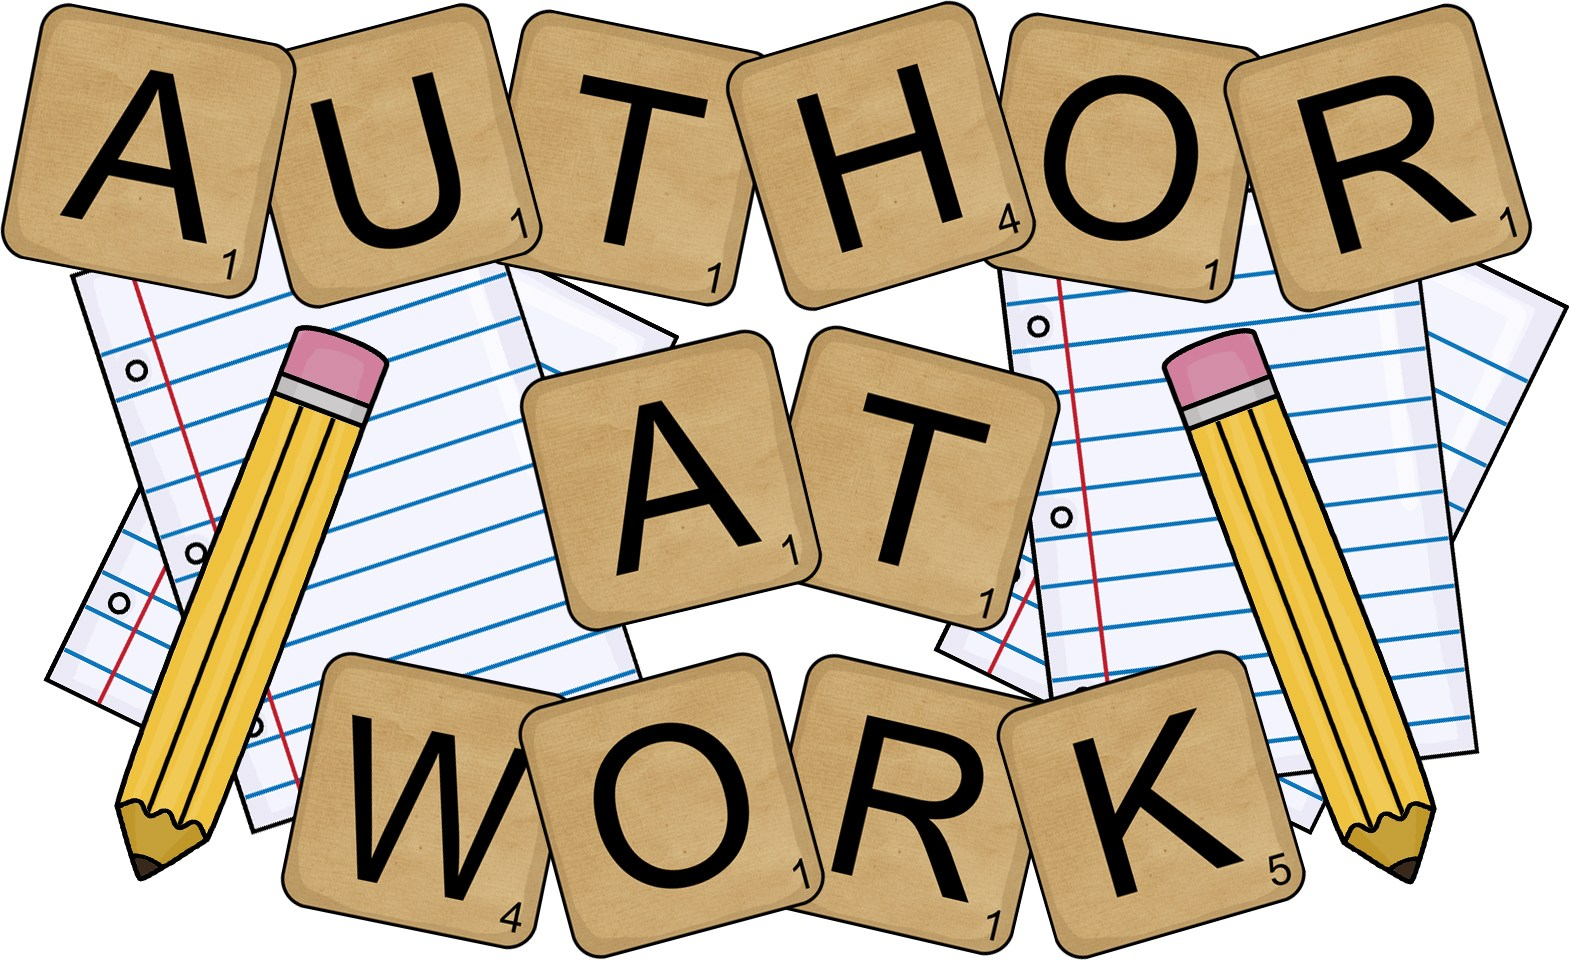 Author clipart book author. February mjbreviewers i love